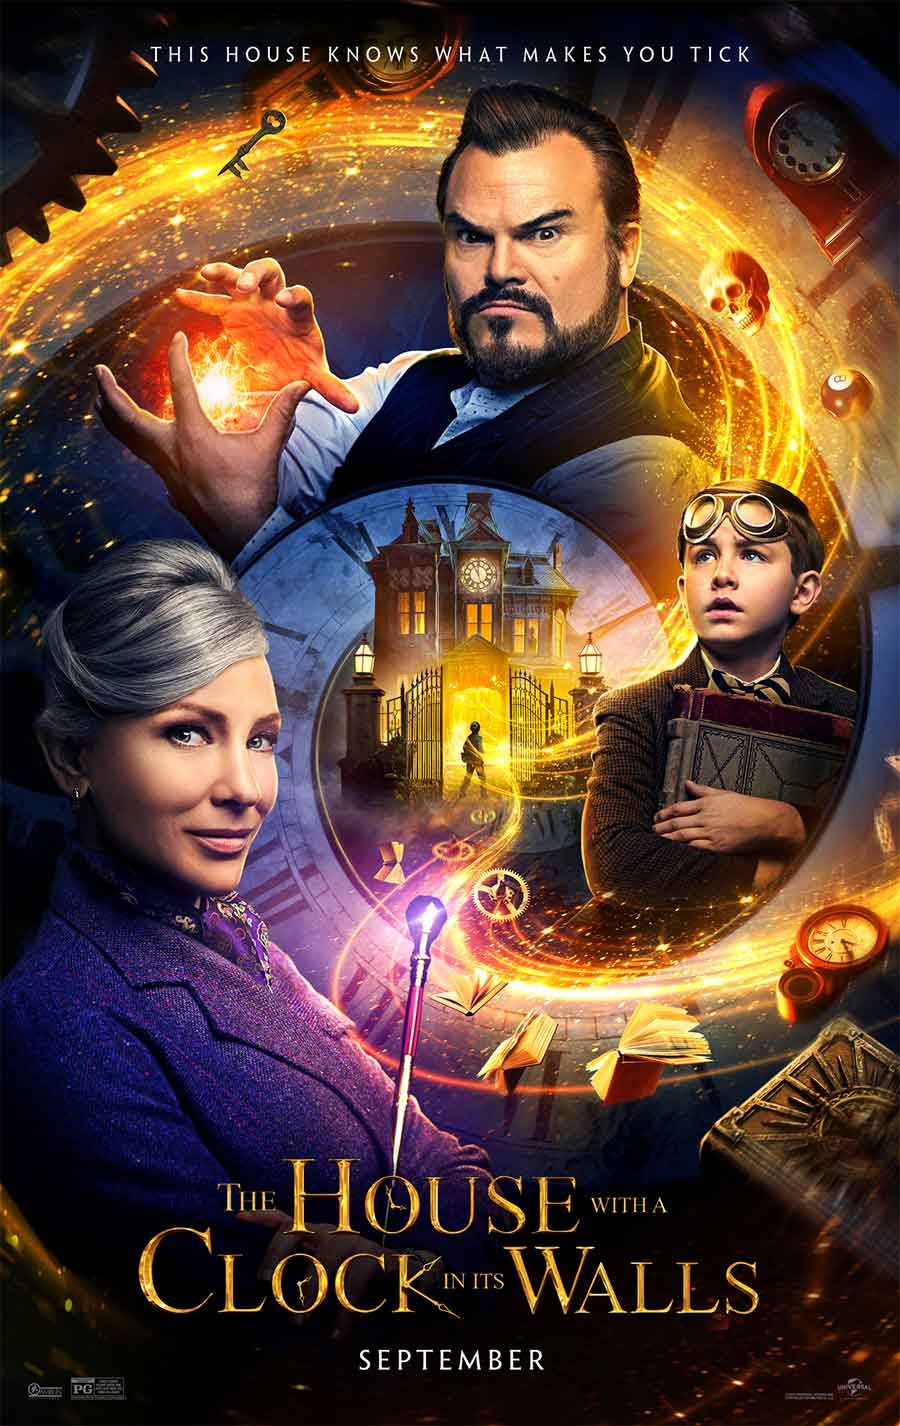 Poster for The House With a Clock in its Walls (LUX)